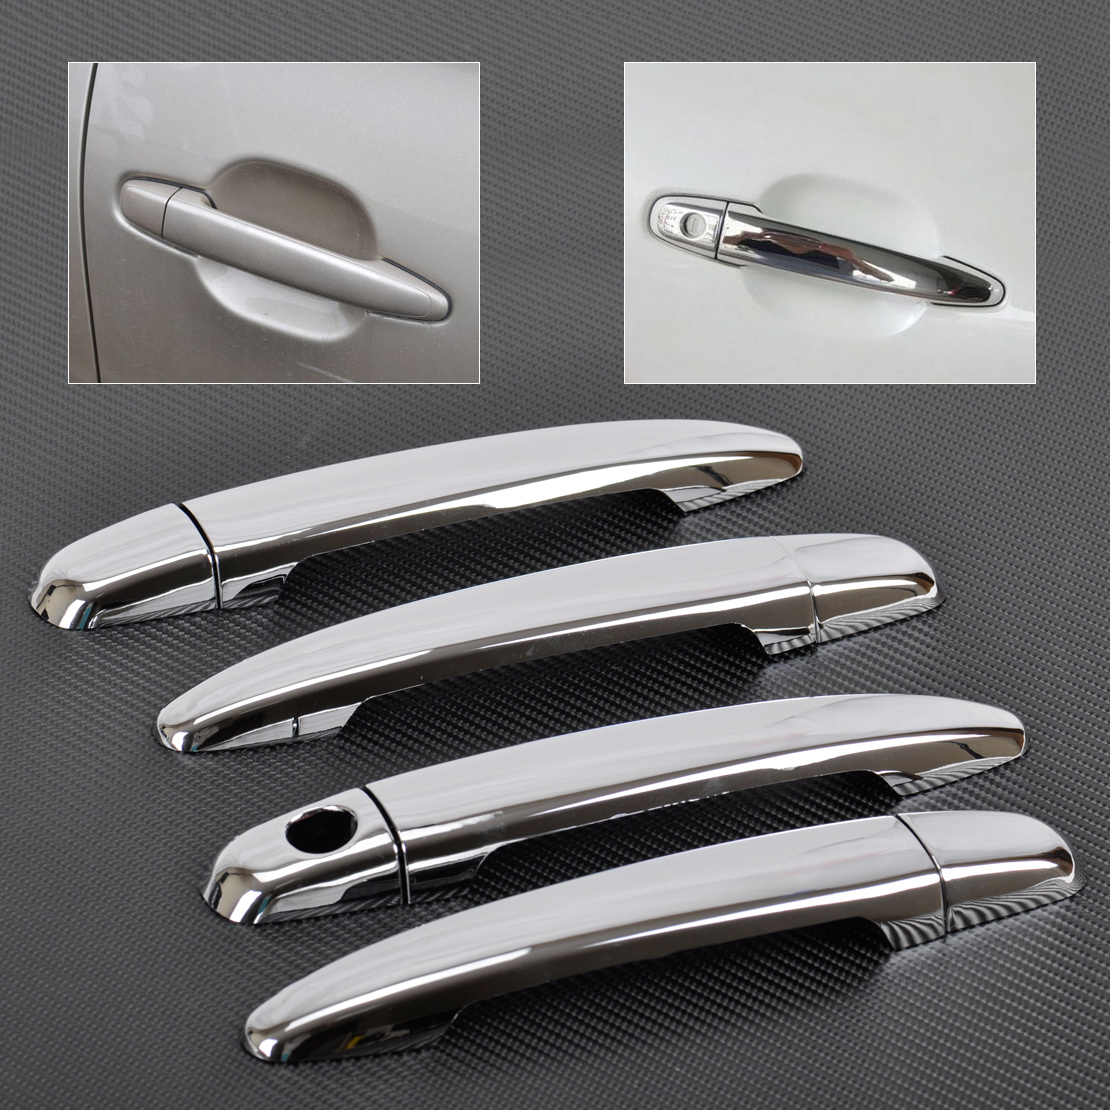 beler Door Handle Cover Trim ABS Chrome for <font><b>Lexus</b></font> GS300 GS350 <font><b>GS450h</b></font> GX470 RX330 RX350 Toyota Camry Tacoma Avalon 4Runner image